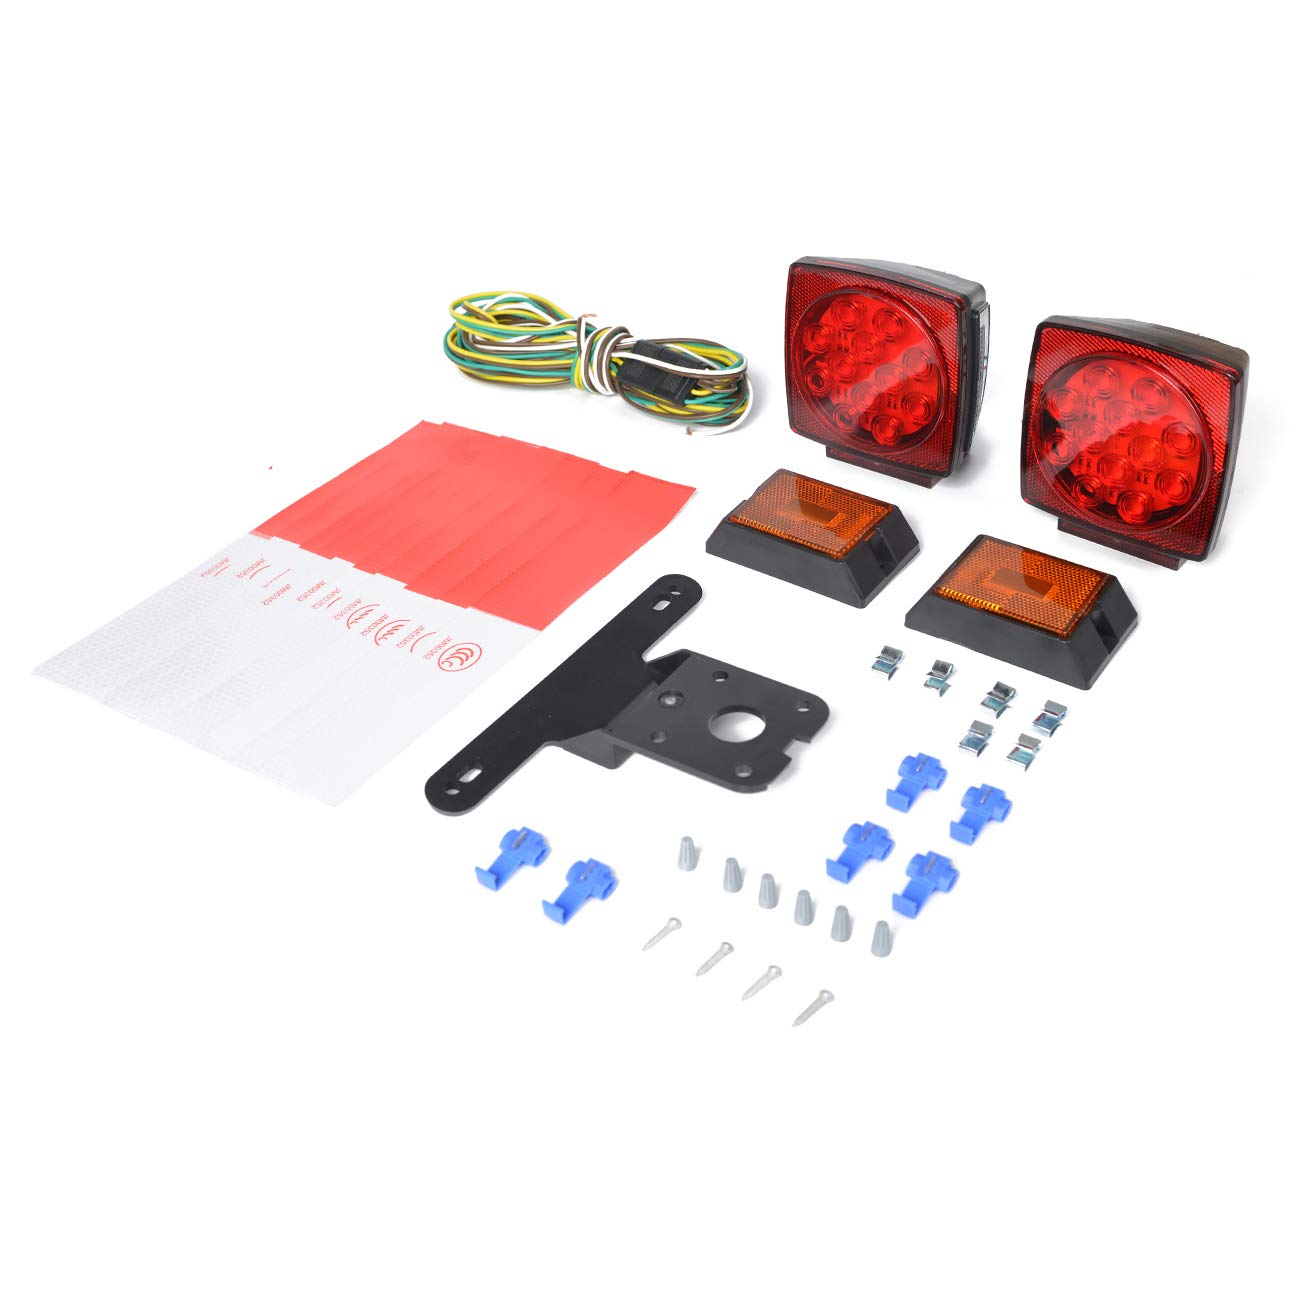 Two Amber LED Marker Lights HQAP 2018 New 12V Submersible LED Trailer Light Kit: Two Combined Stop taillights 21 feet and 4 feet Coded Wiring Harness,10pcs Reflective Stickers MLA000502 Turn Signals